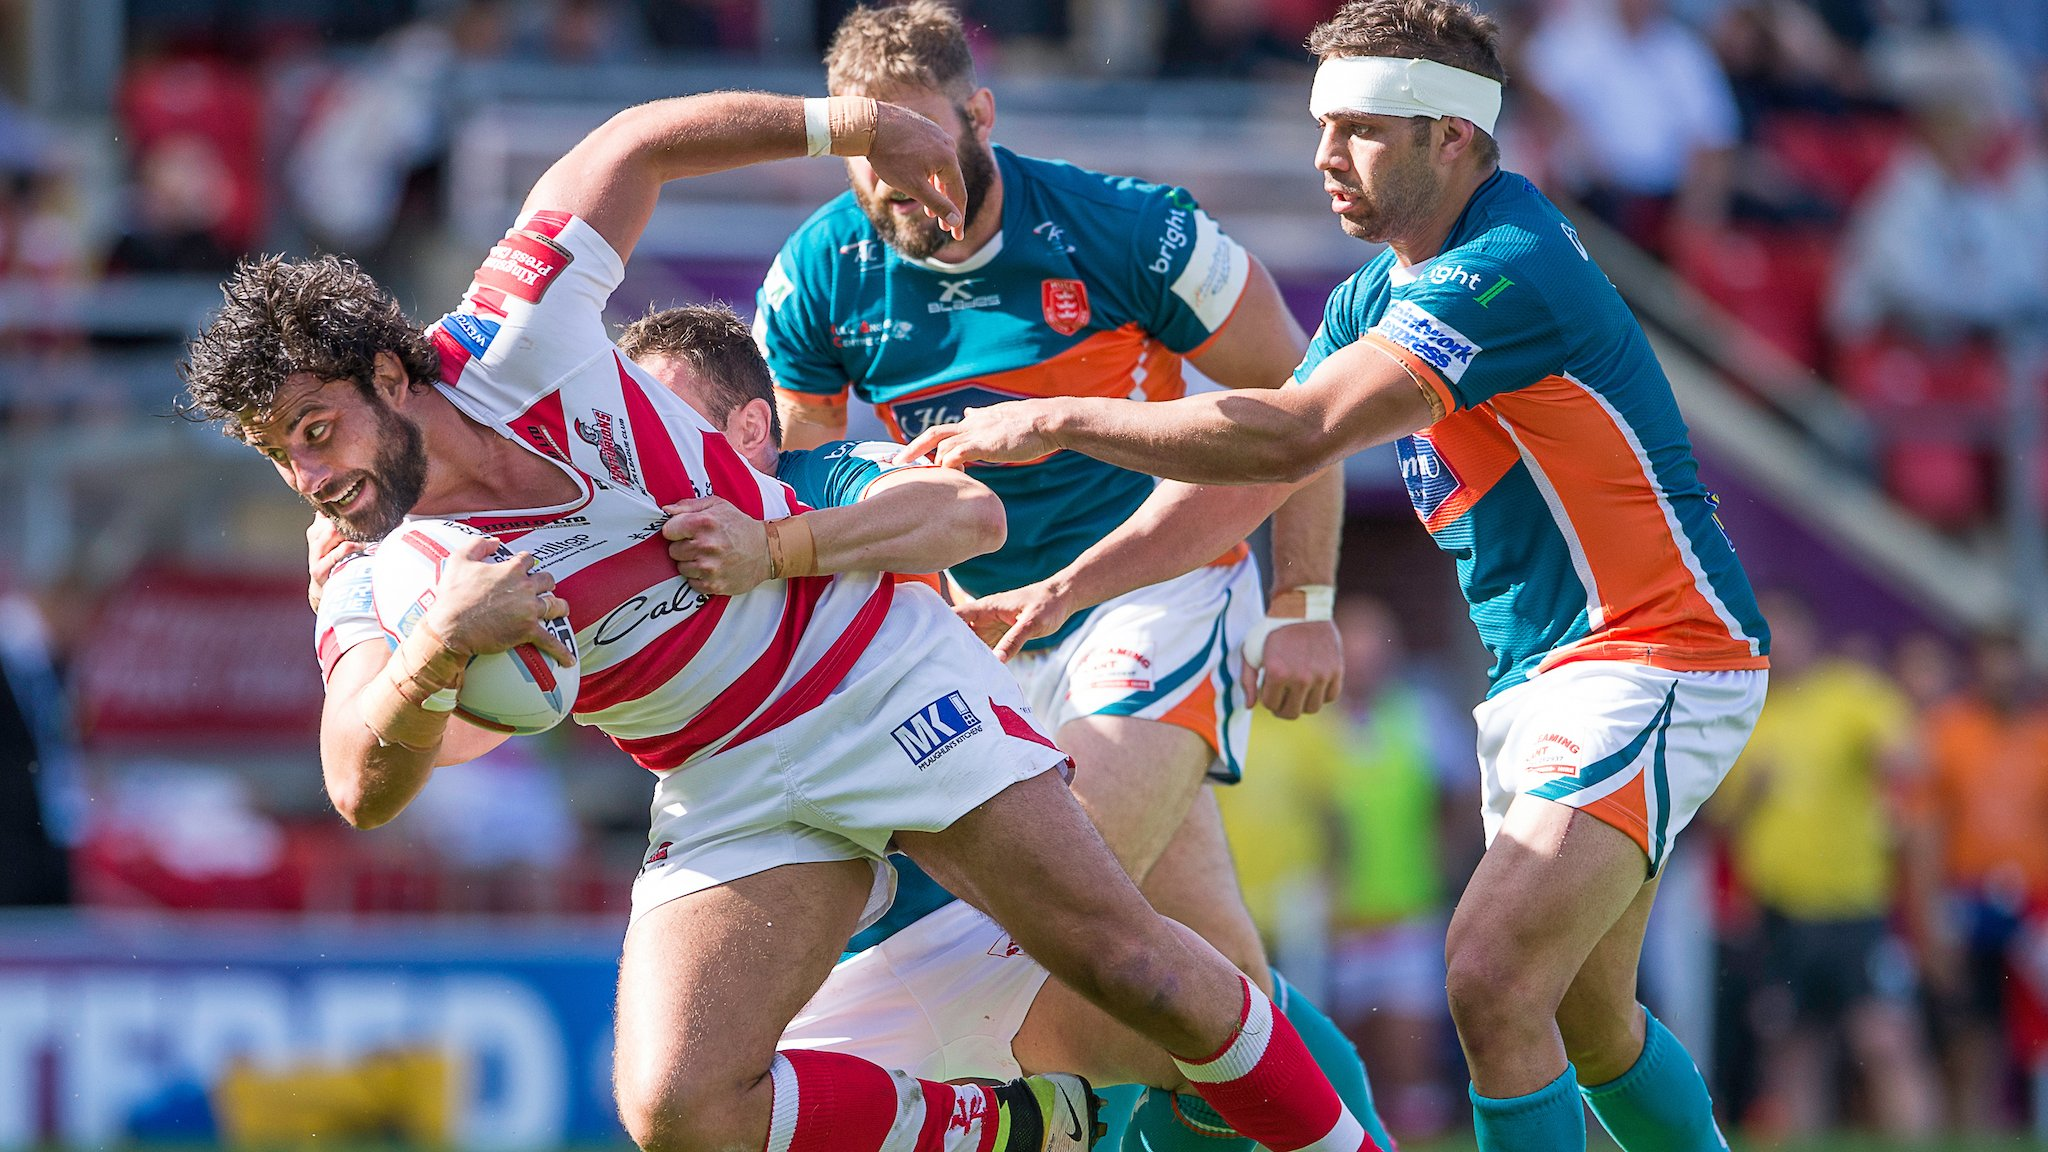 Qualifiers: Leigh Centurions 16-20 Hull KR